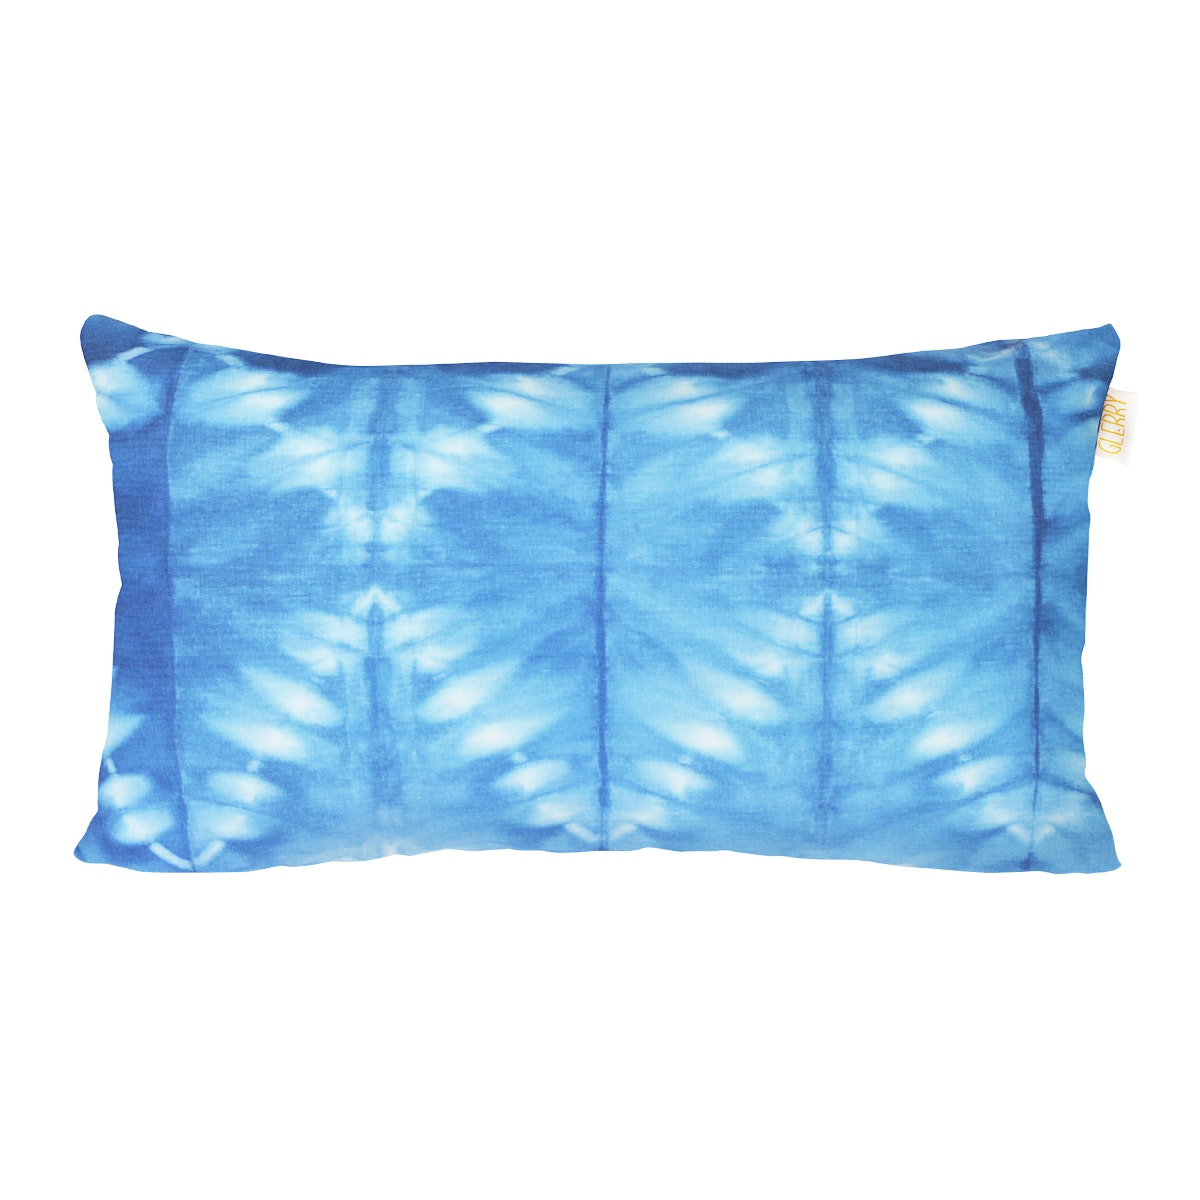 Glerry Home Decor Blue Diamond Cushion 50x30cm